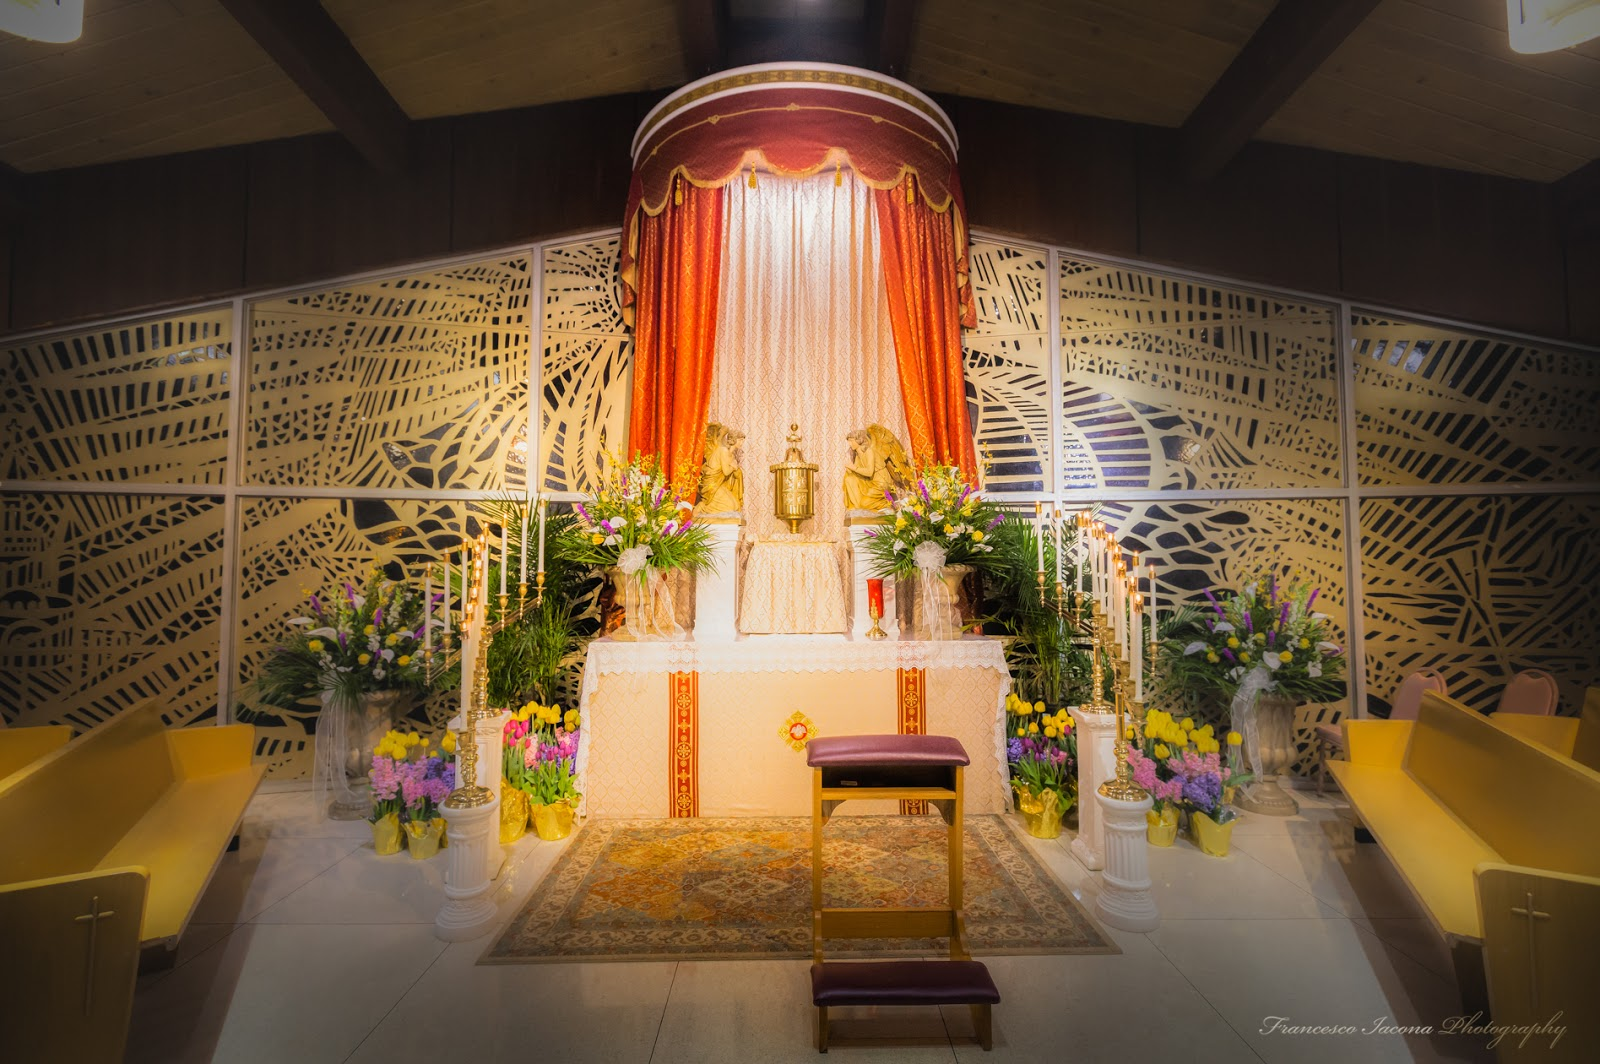 Arte Floral Na Liturgia New Liturgical Movement Holy Thursday 2019 Photopost Part 3